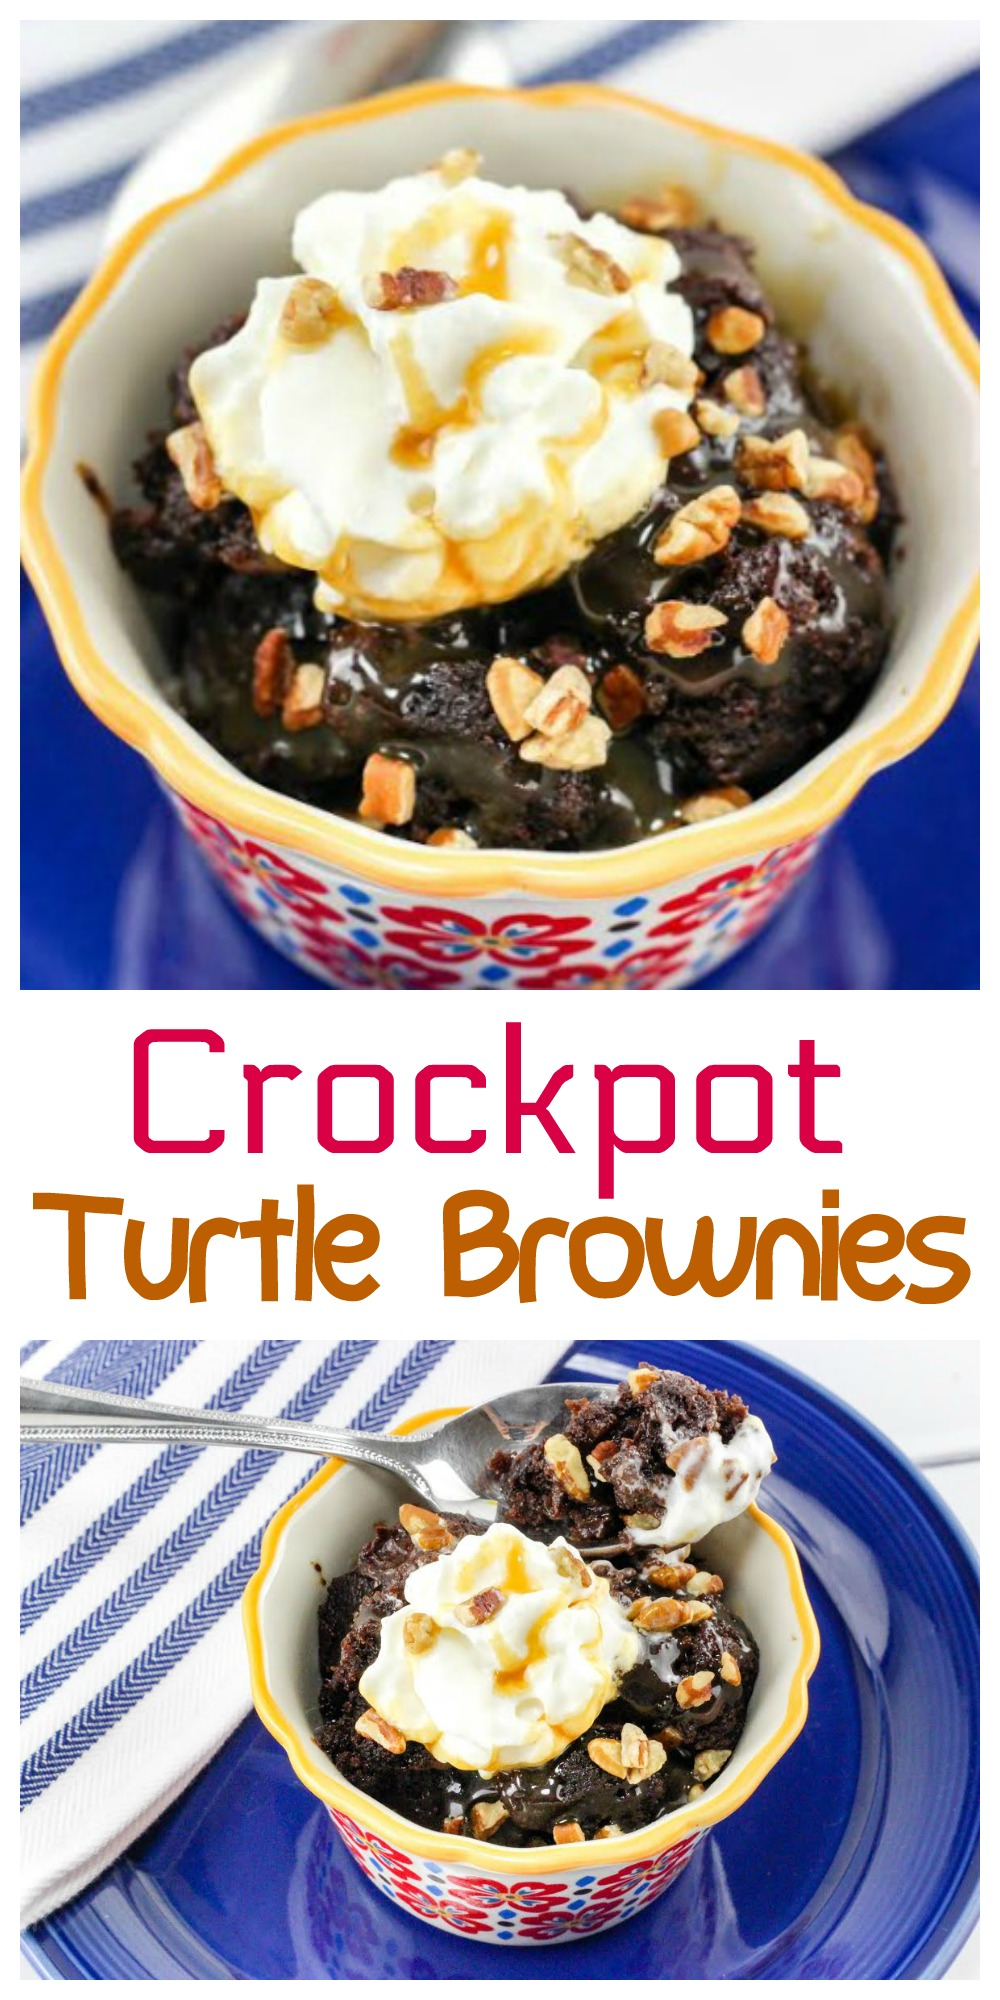 Looking for an easy dessert idea? Try these Crockpot Turtle Brownies. This recipe is really easy to make and the brownies come out all gooey and delicious.